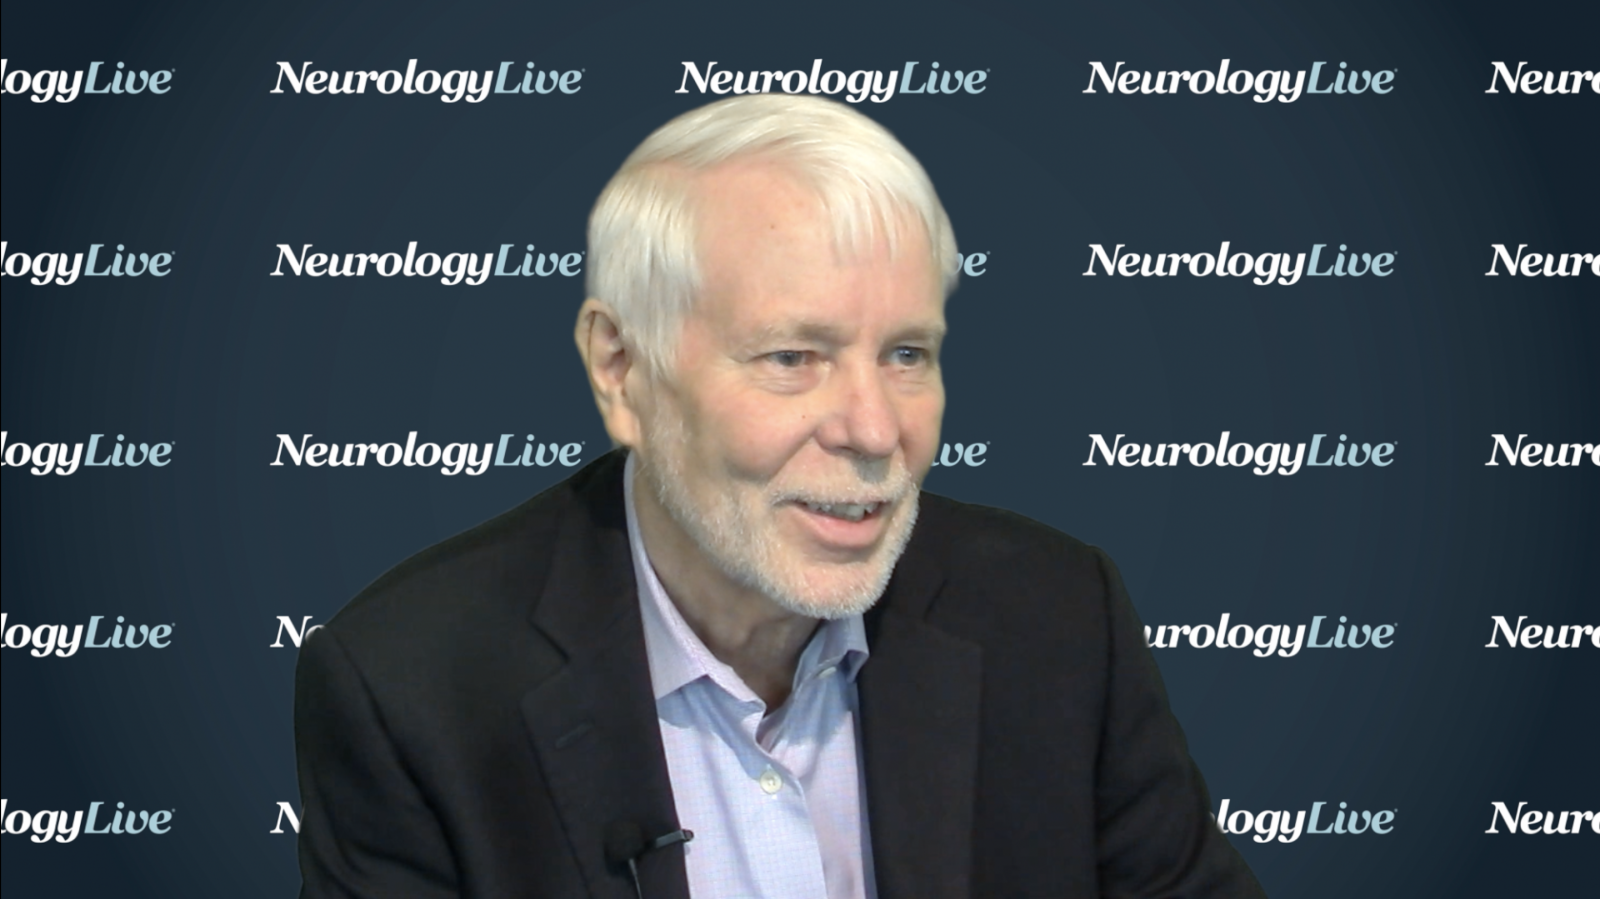 Bruce Trapp, PhD: Insights Gleaned from Myelocortical Multiple Sclerosis